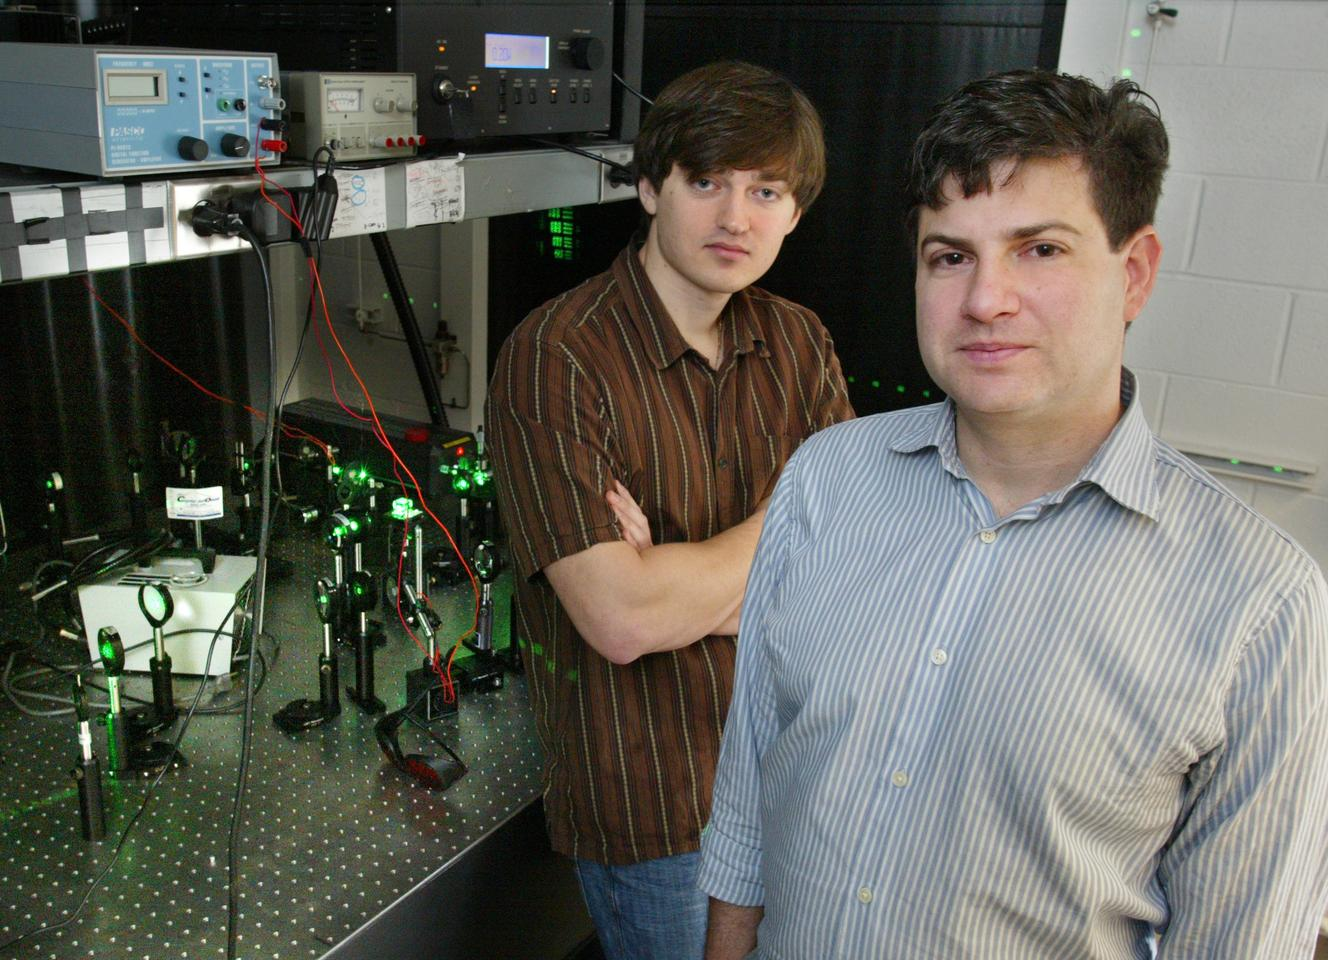 Princeton engineering researchers Jason Fleischer and Dmitry Dylov with their imaging system